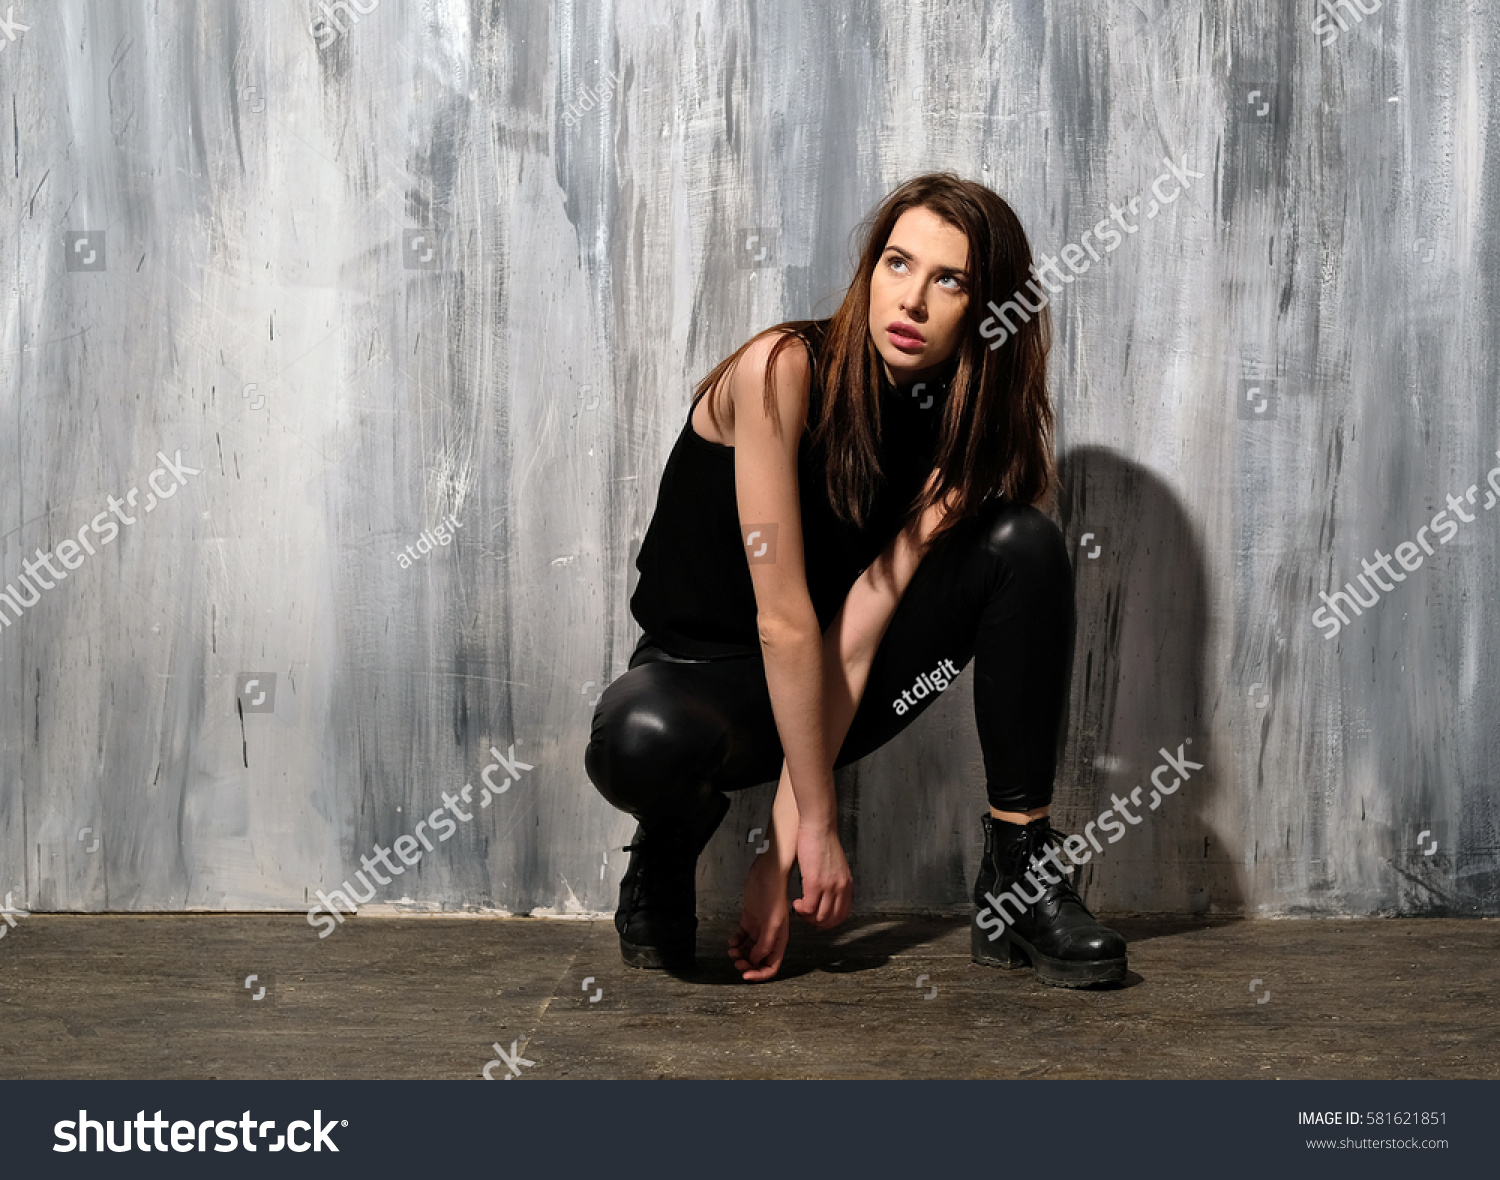 Young girl in black open T-shirt and leather leggings. Long-haired woman posing on gray backdrop. Sitting pose: shoulders open, hands hang between legs, patent leather shoes. #581621851